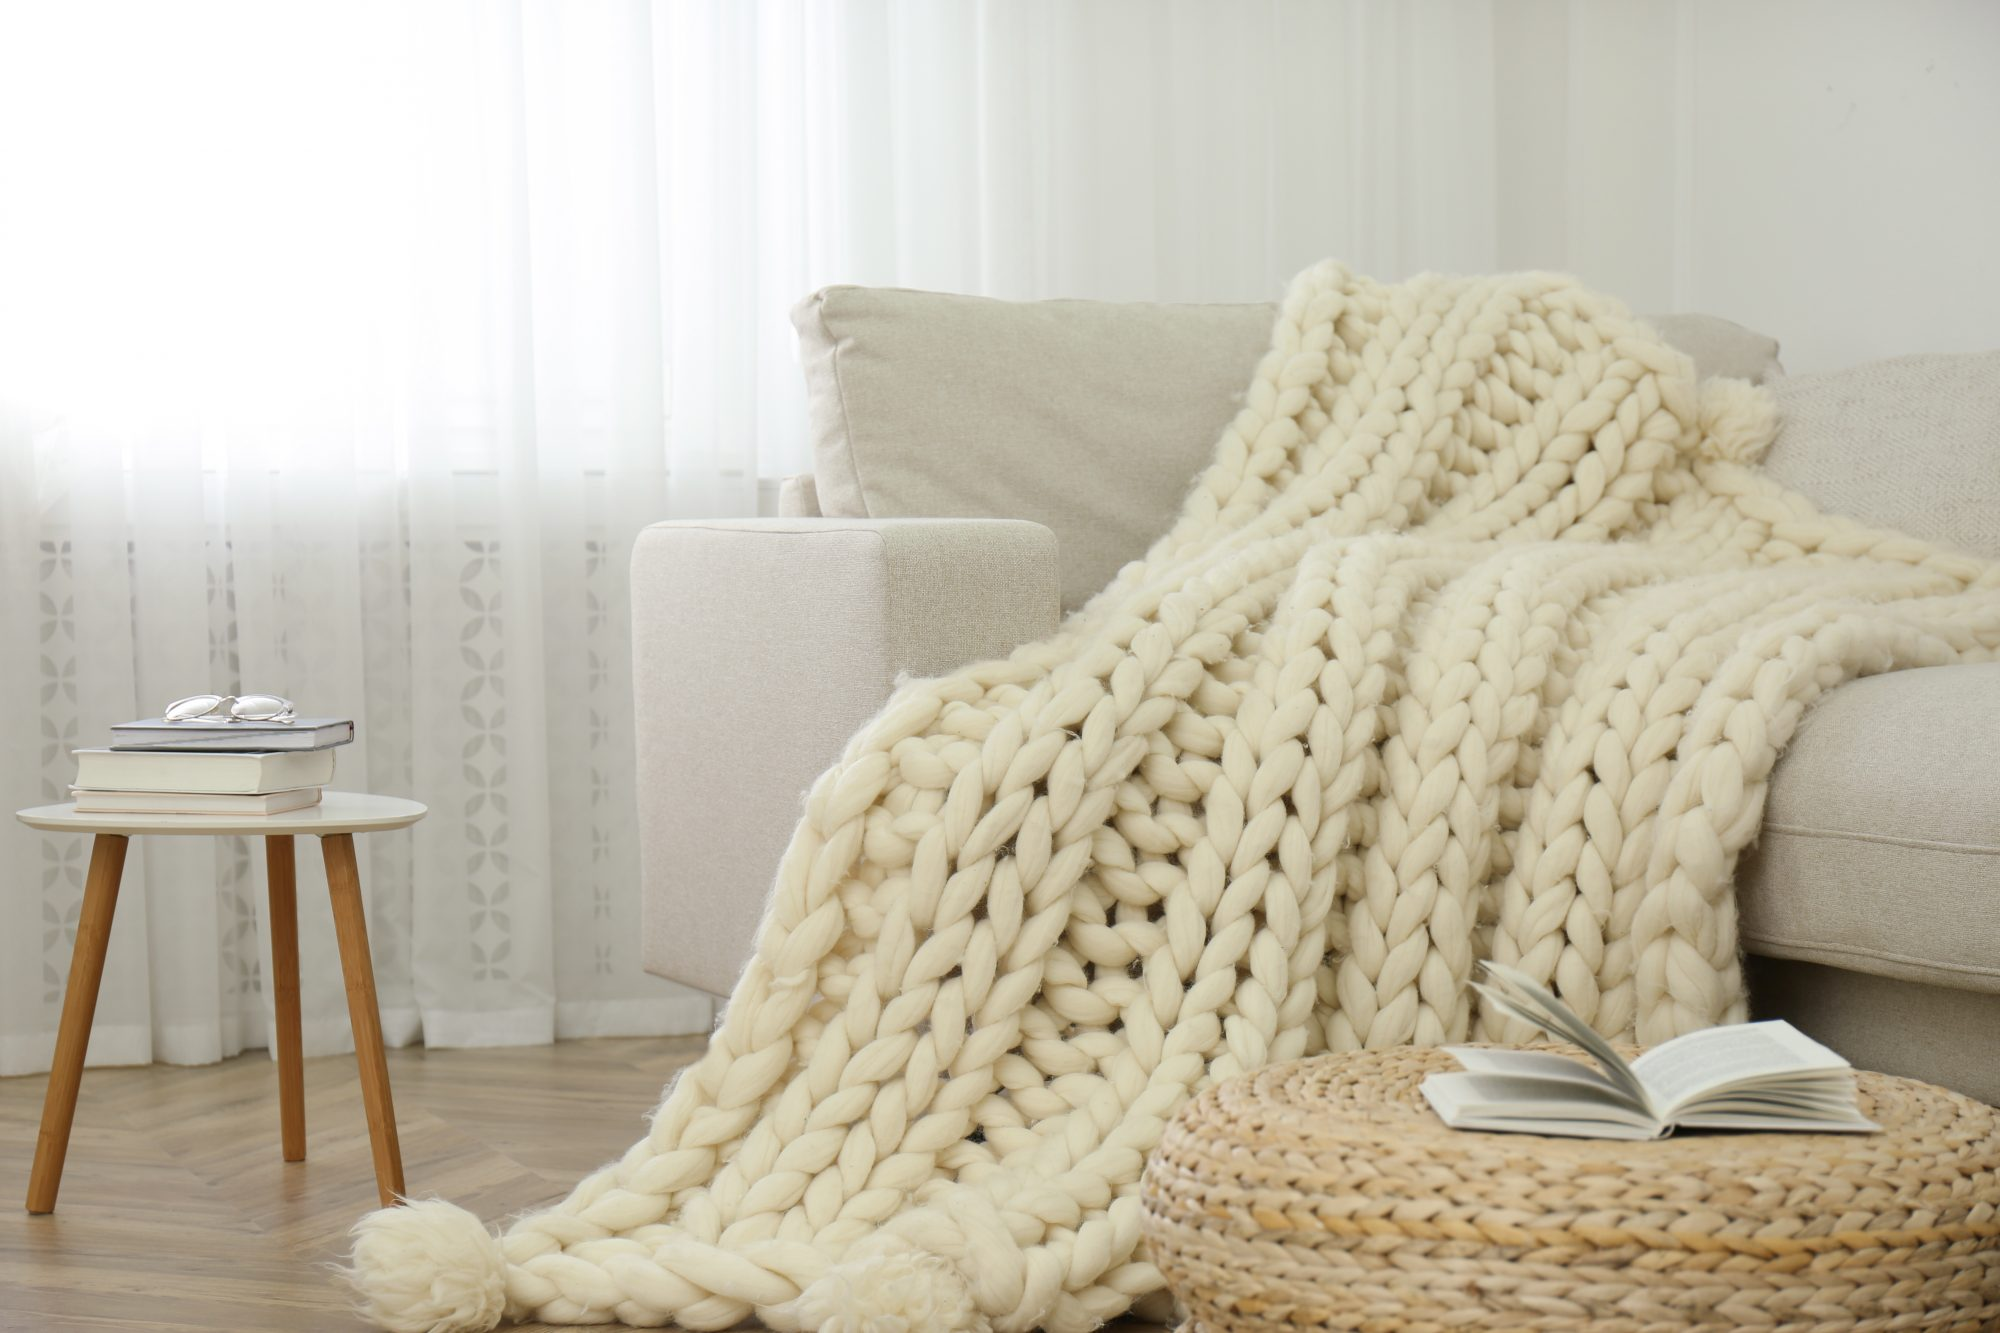 chunky knit blanket over chair